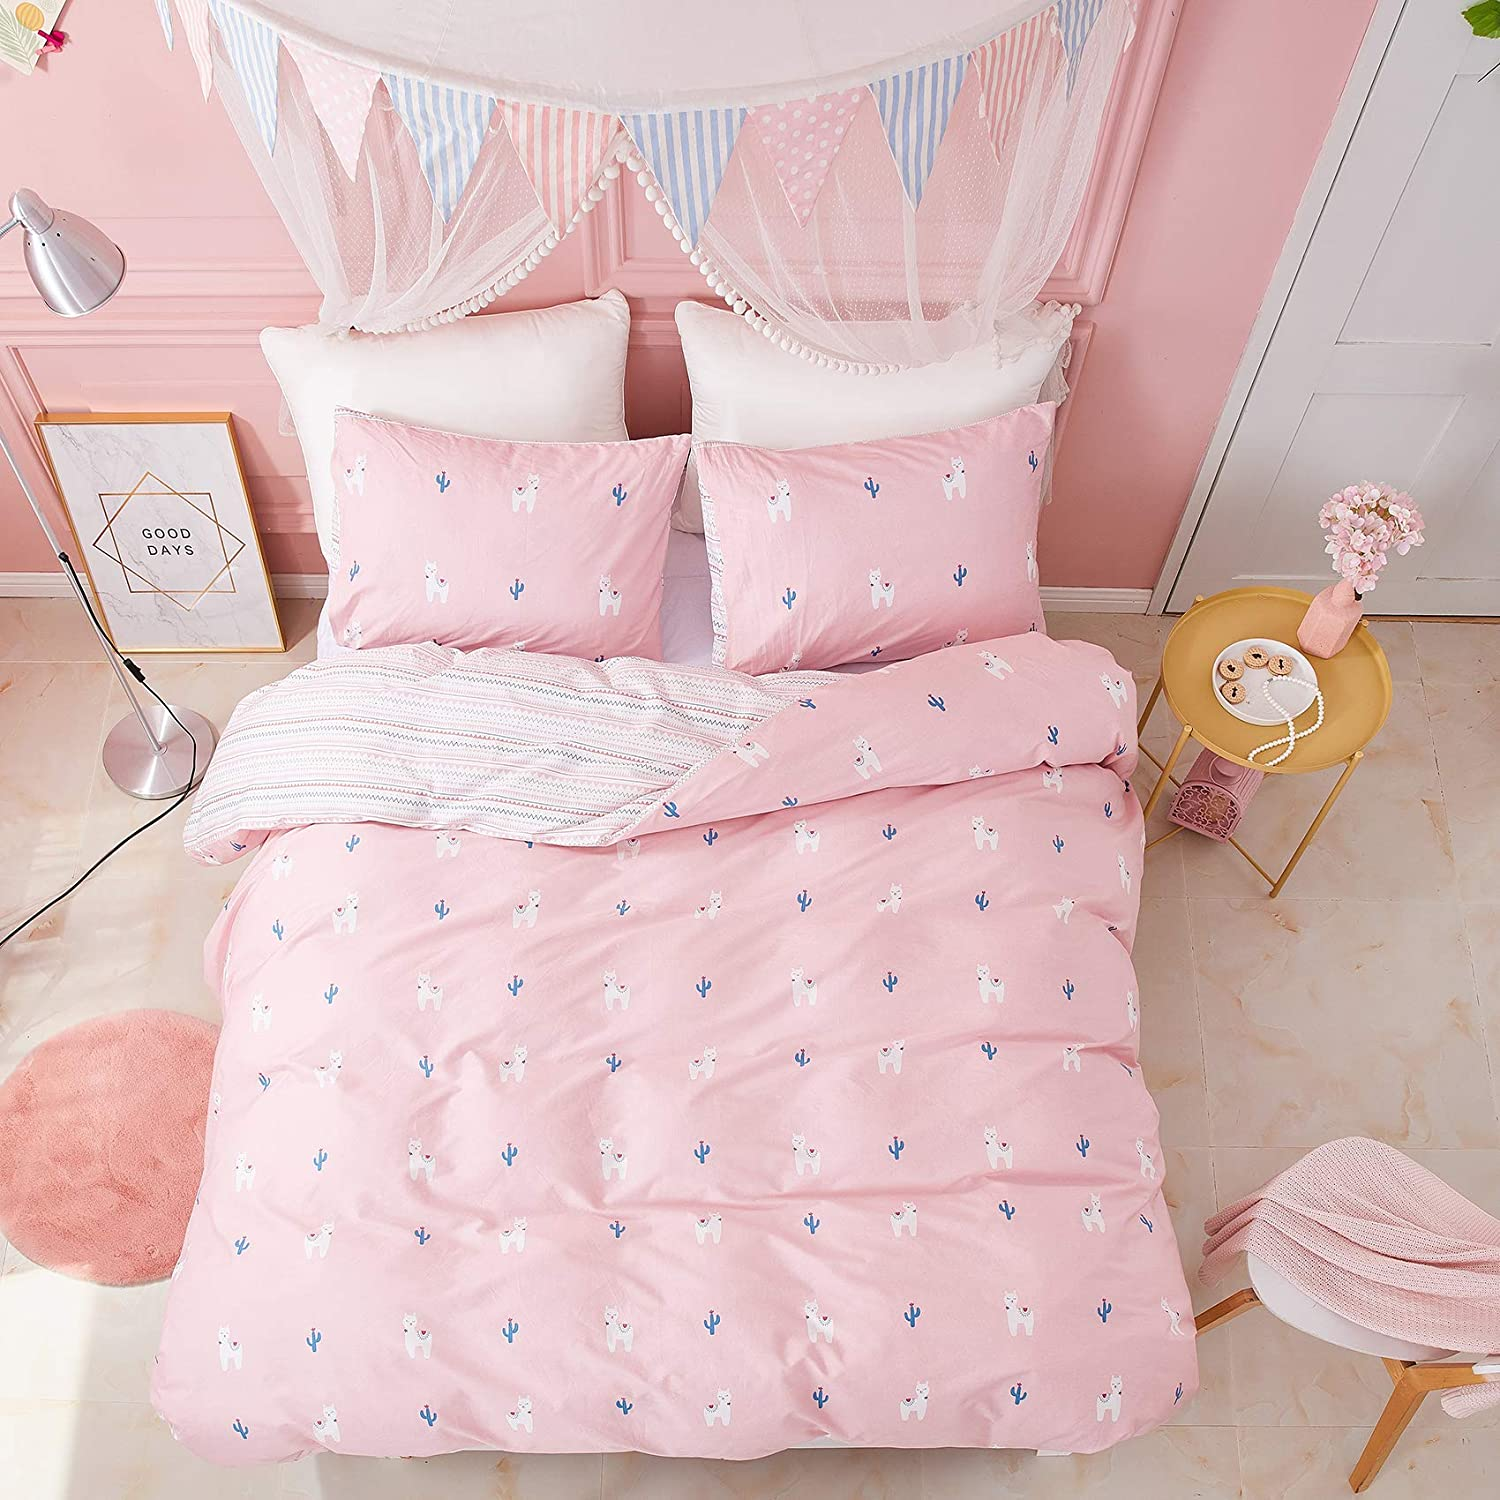 CLOTHKNOW Pink Alpaca Bedding Duvet Cover Sets Twin Duvet Cover Kids Toddler Cotton Llama Cactus Reversible Striped Bedding Duvet Cover Sets with 2 Pillowcases